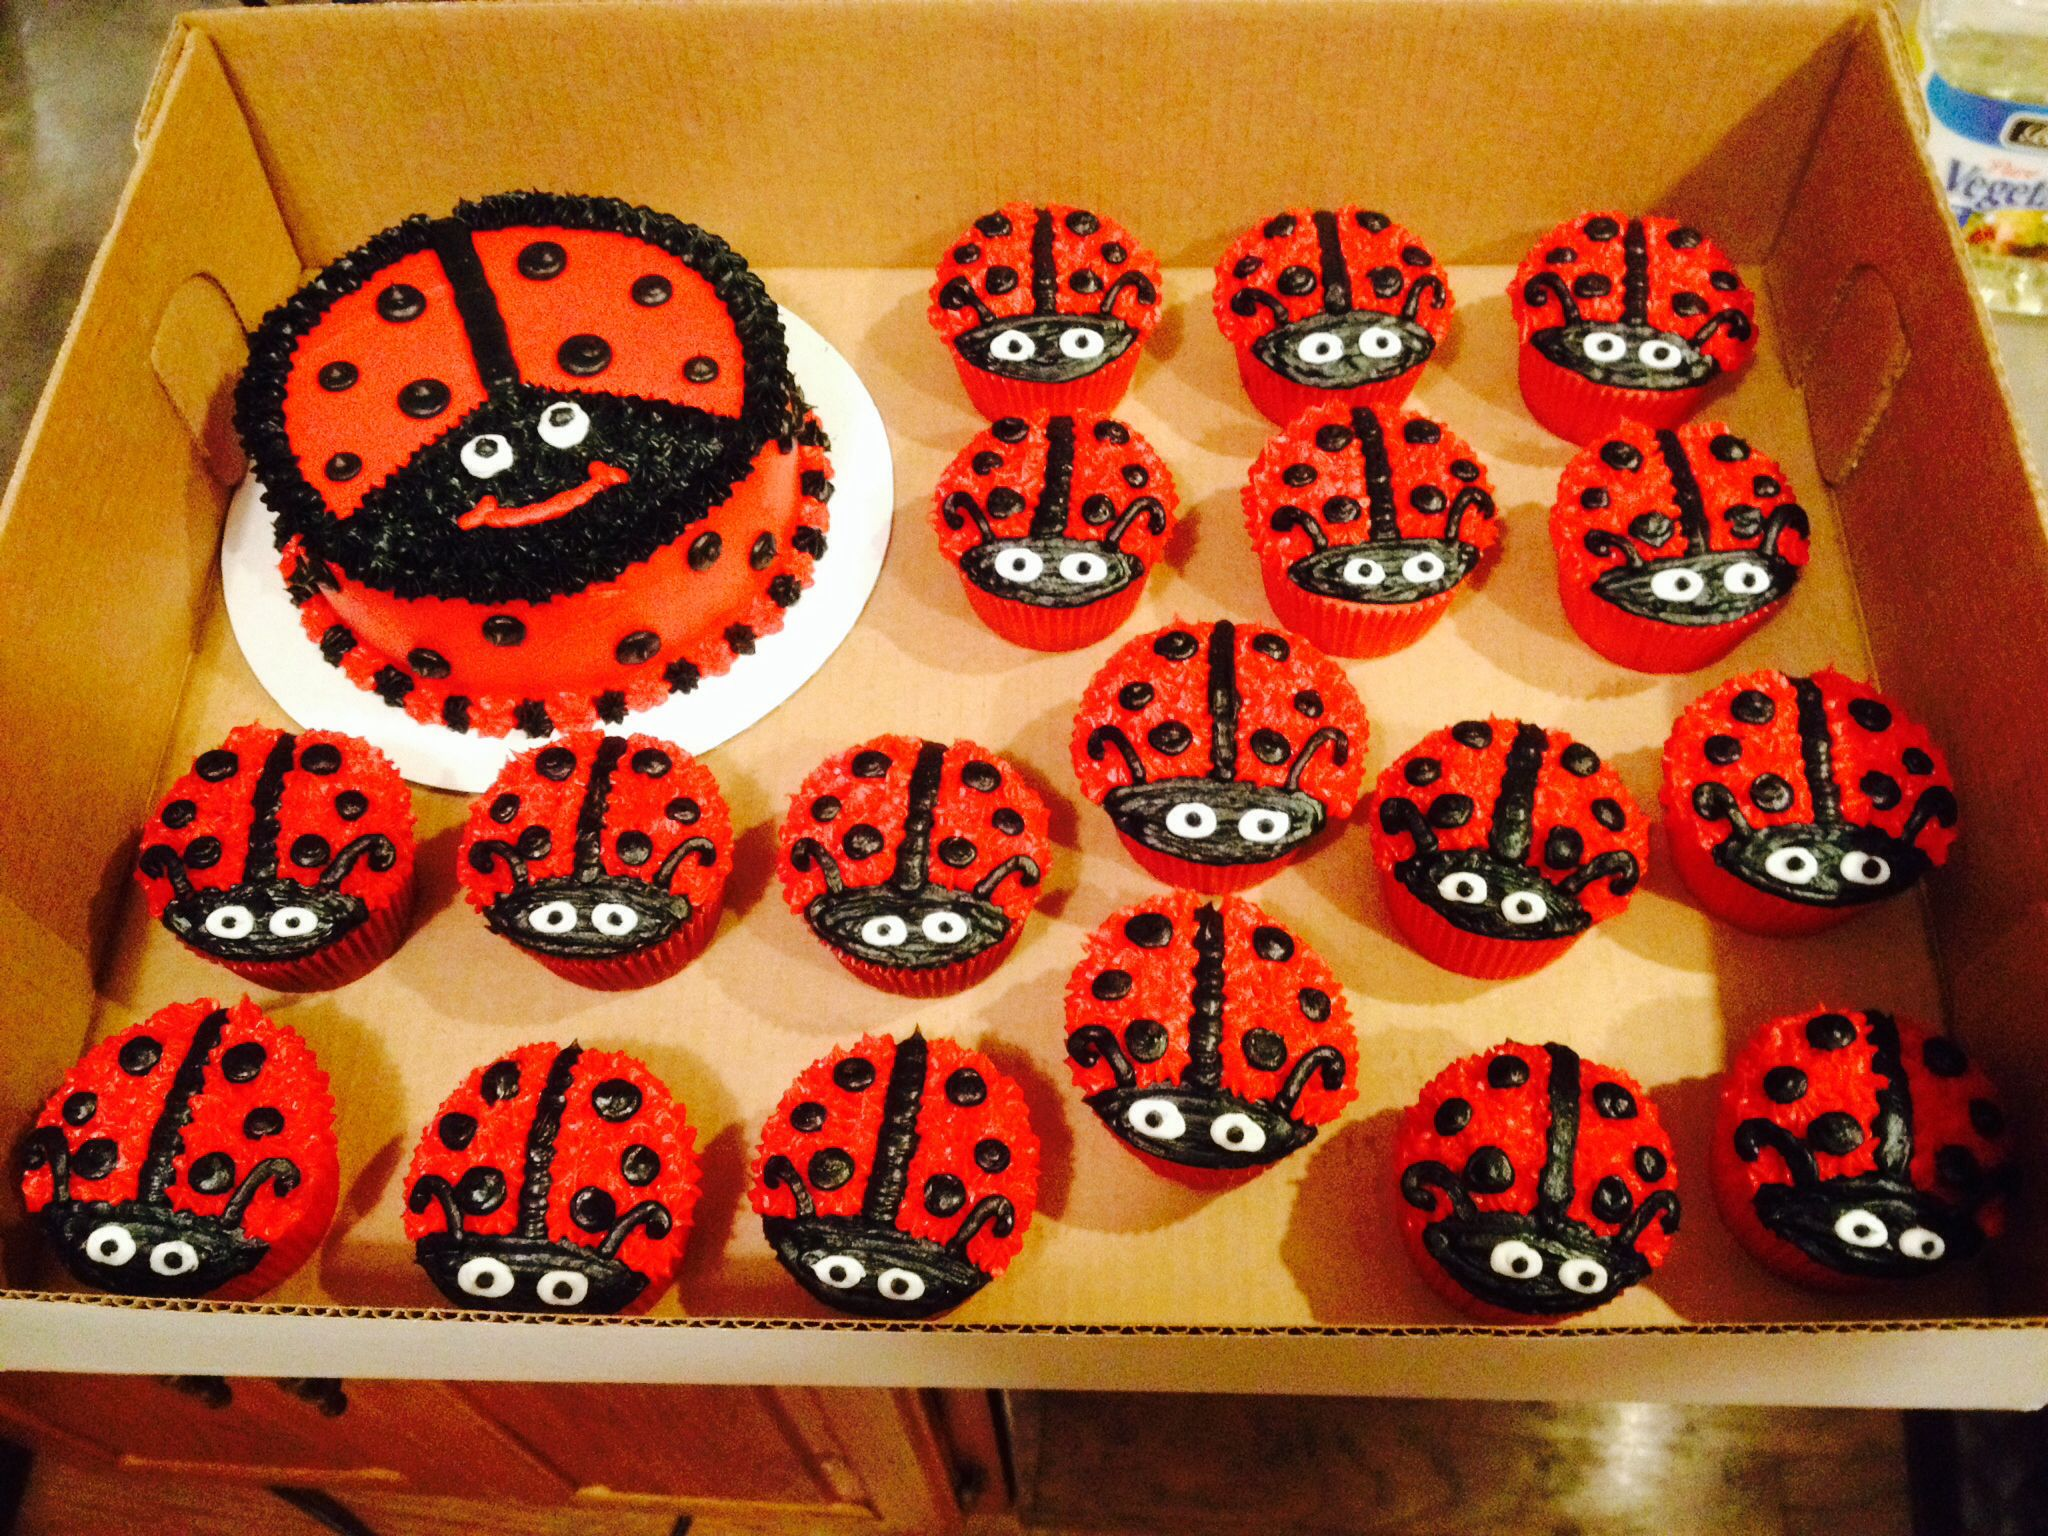 9 Fun Ways To Decorate Cupcakes That Look Awesome With Images